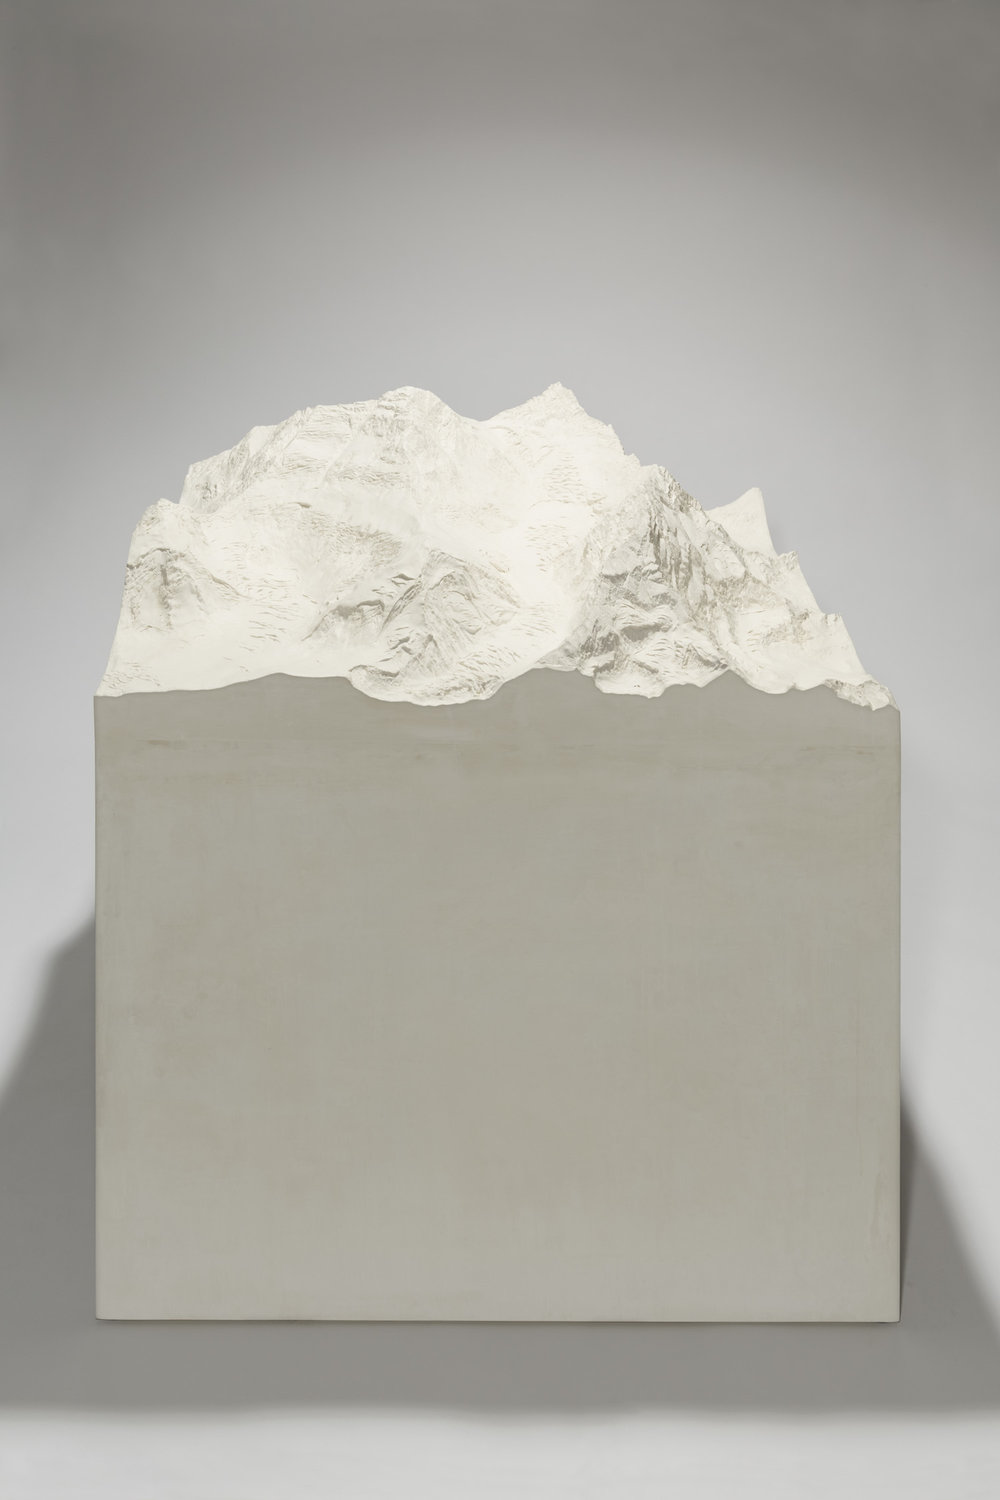 Ein höchster Berg , 2013   Plaster and stucco   112 x 100 x 100 cm   44 x 39 1/3 x 39 1/3 in